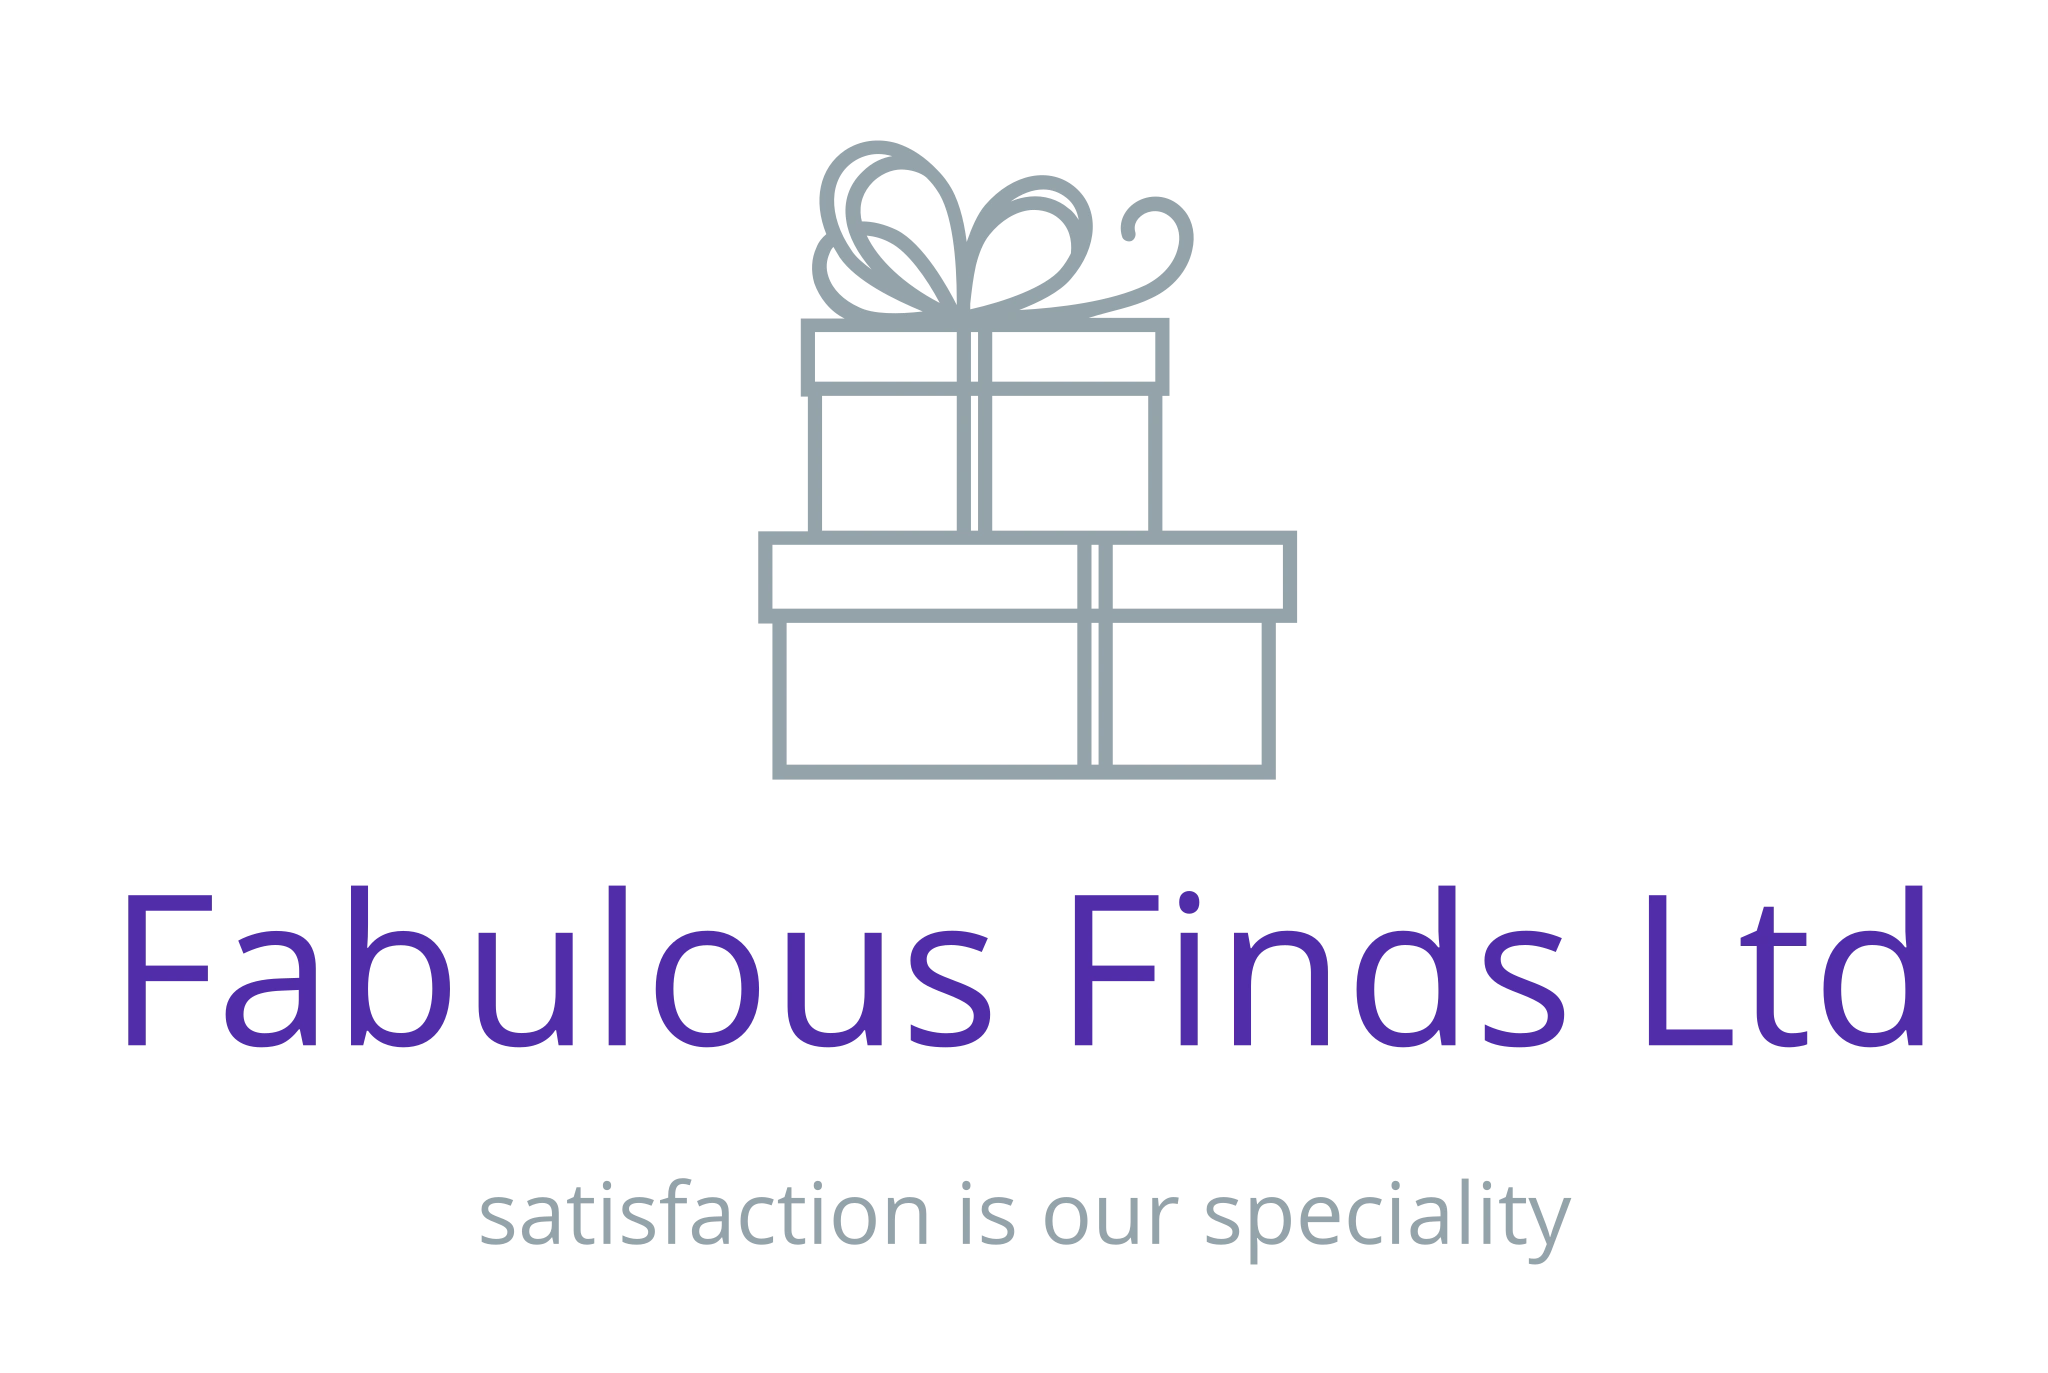 Fabulous finds limited logo